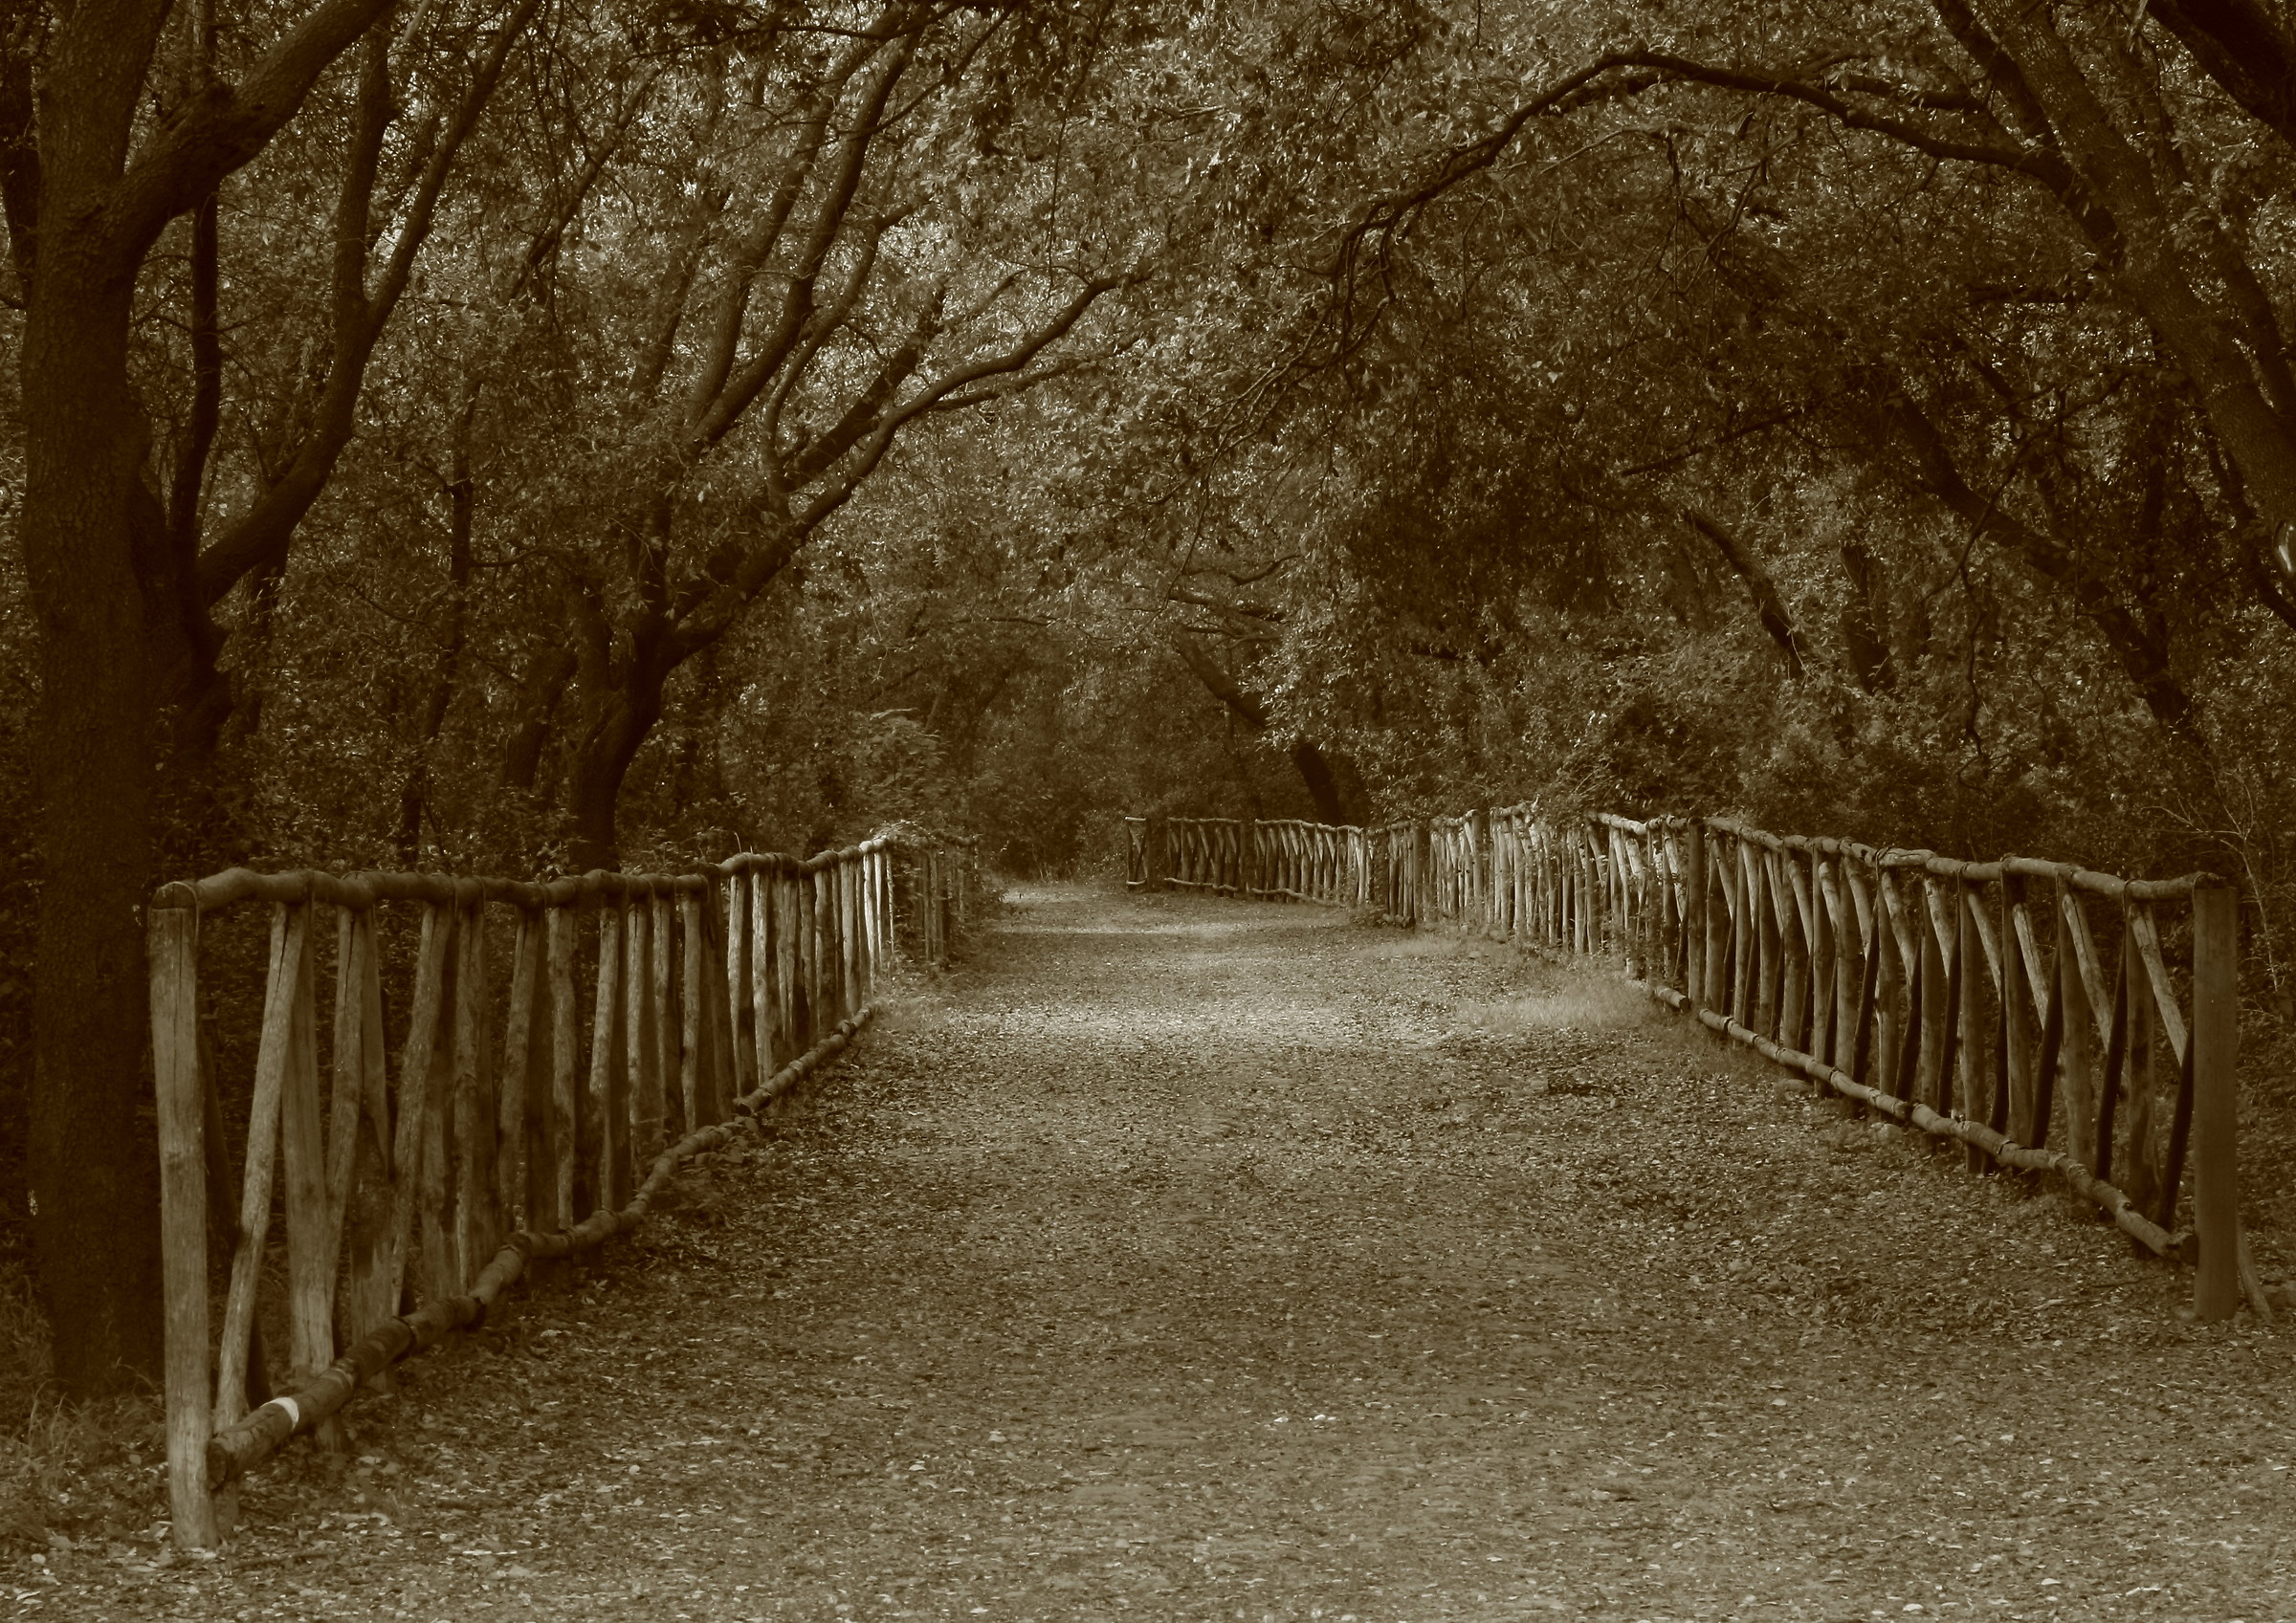 along the avenue in silence, my thoughts and fears...